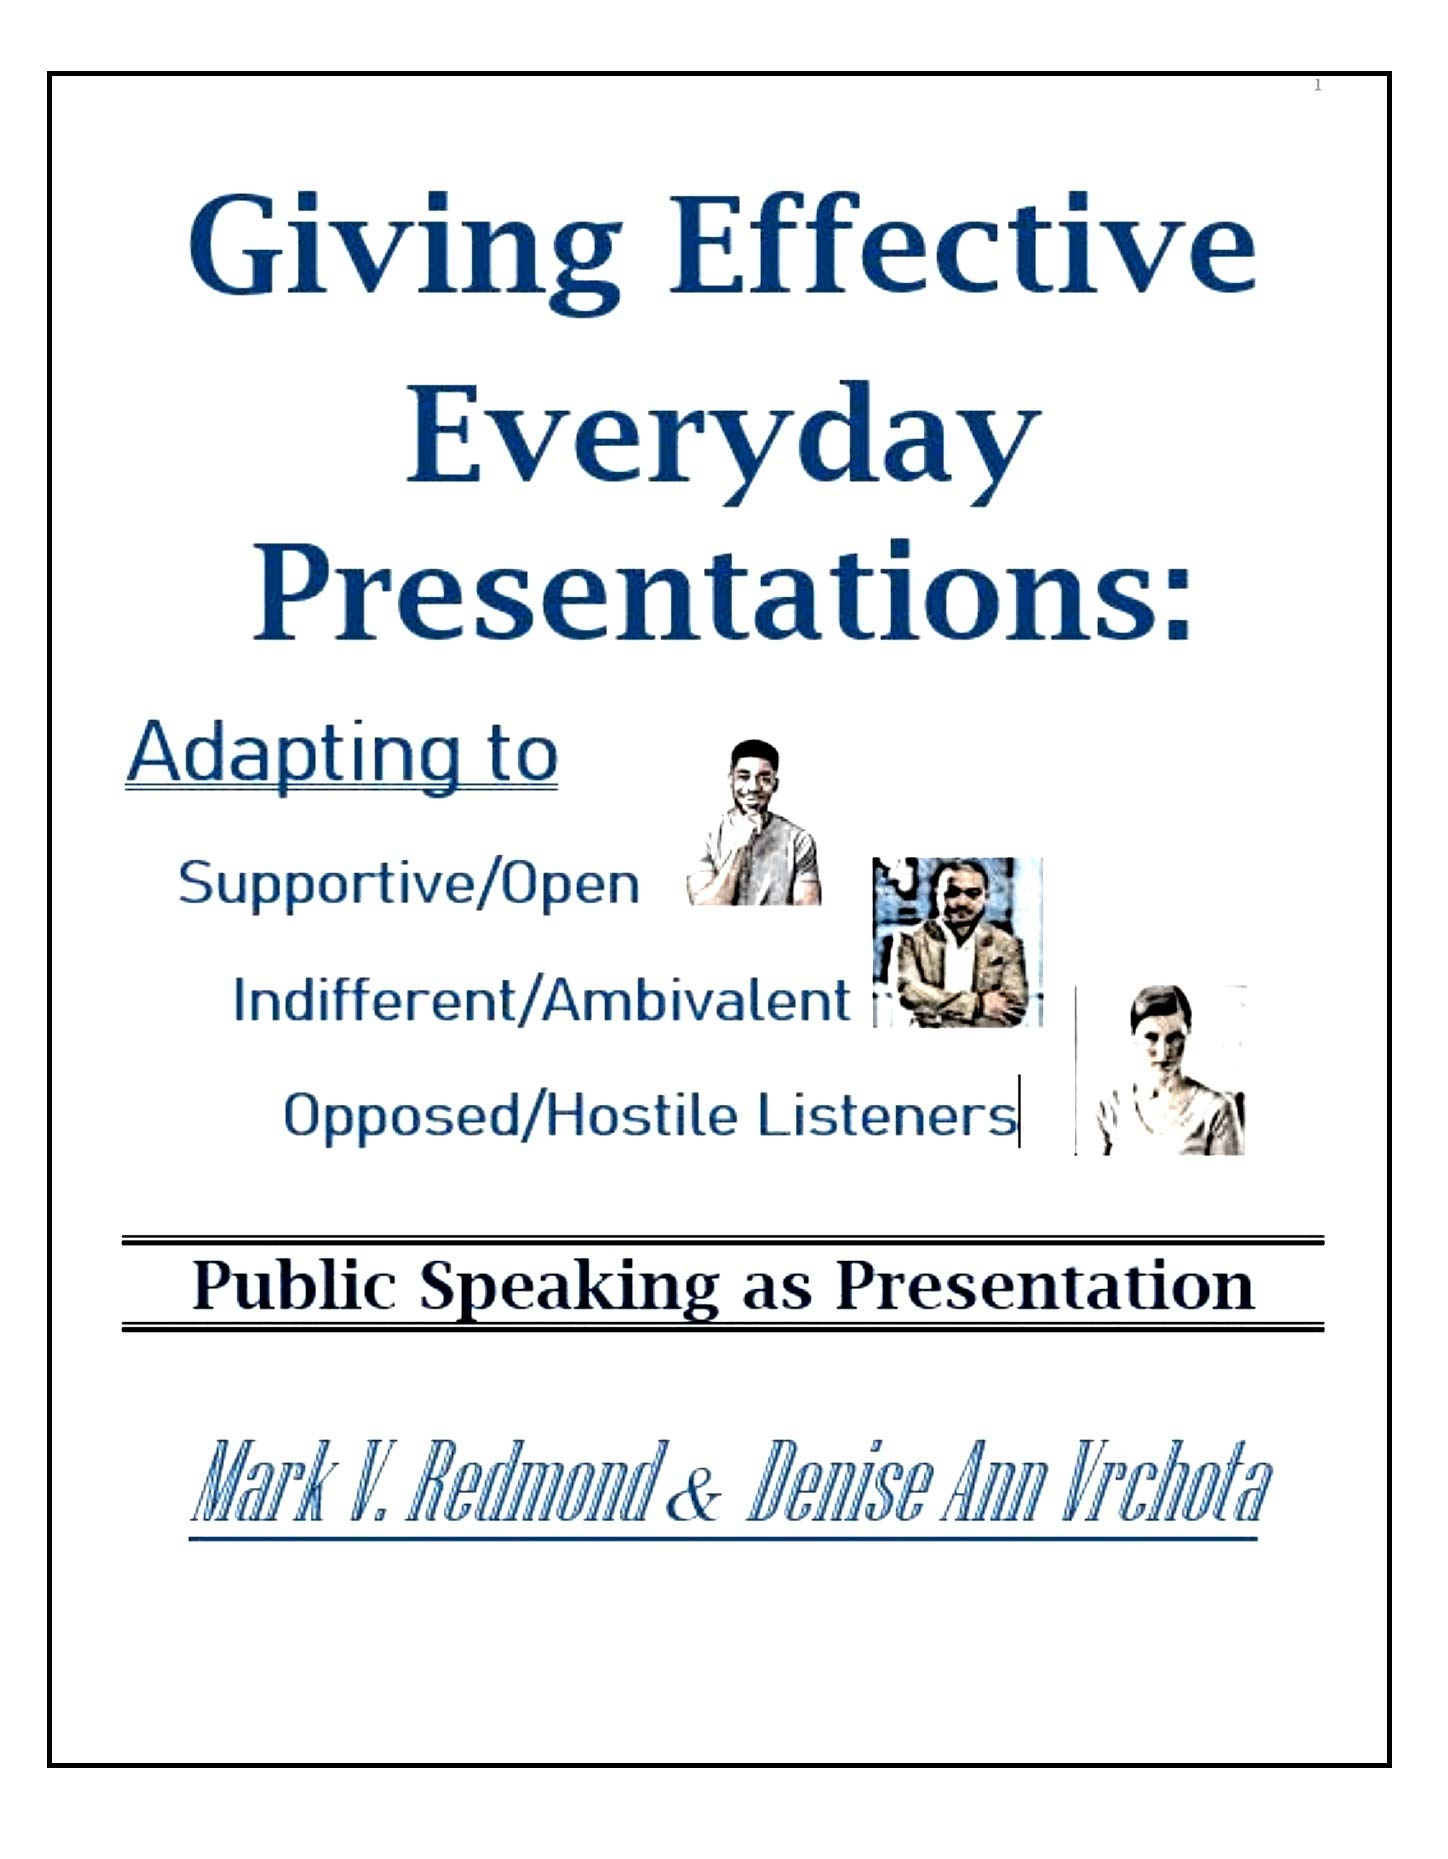 Giving Effective Everyday Presentations: Adapting to Supportive/Open, Indifferent/Ambivalent, and Opposed/Hostile Listeners. Public Speaking as Presentation